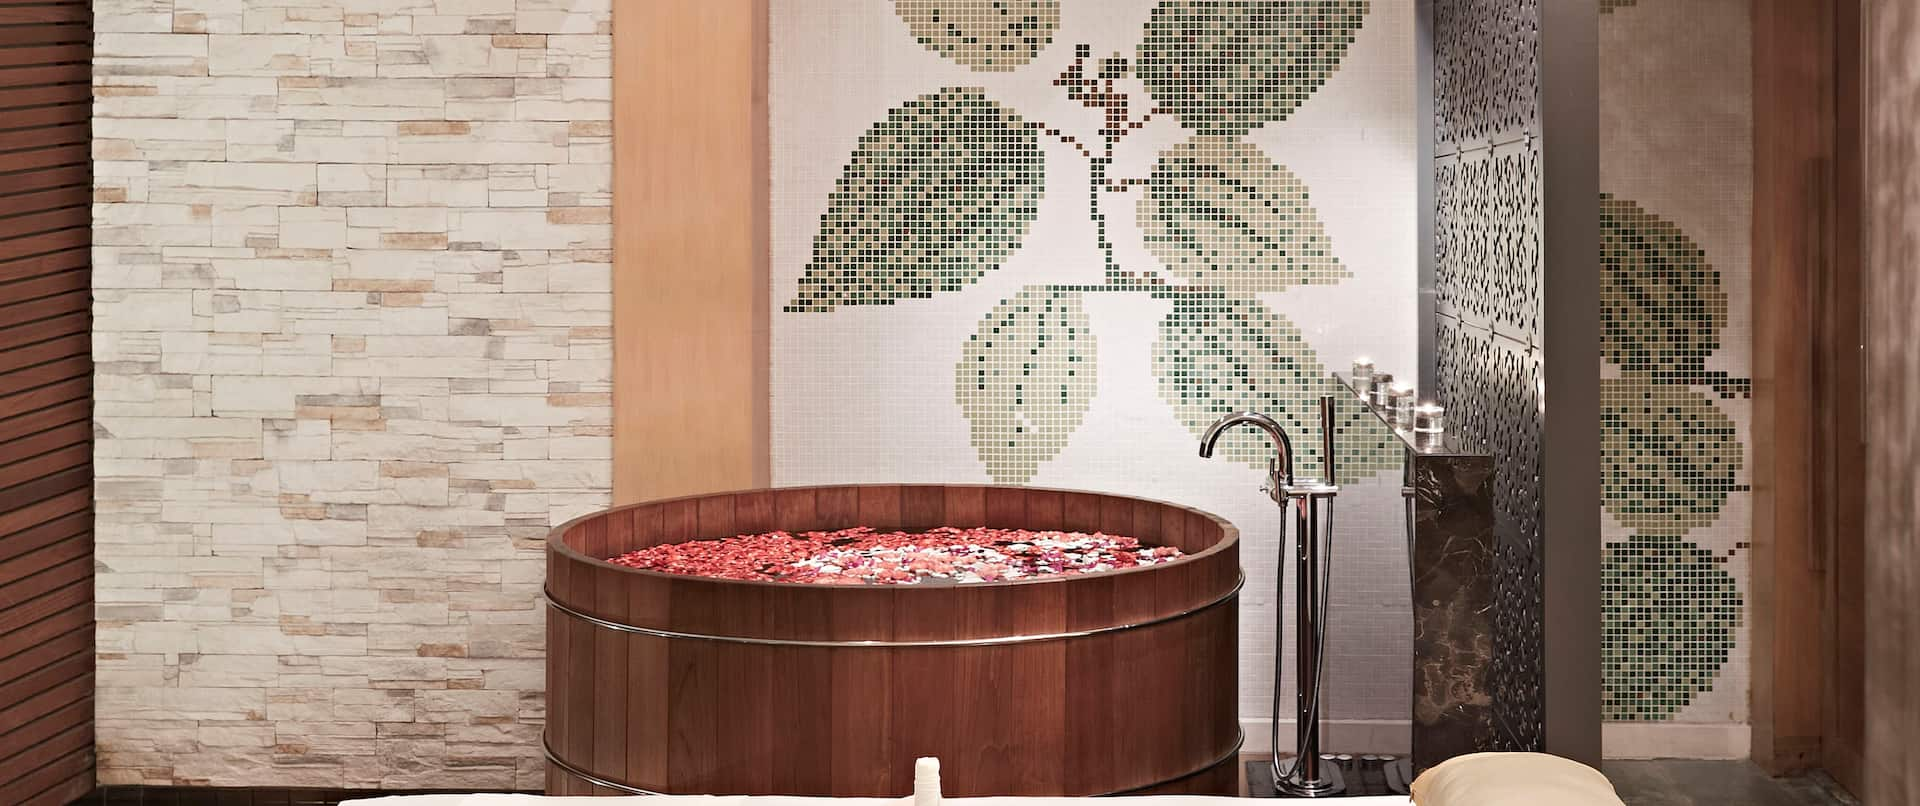 Spa Treatment Room with Massage Bed